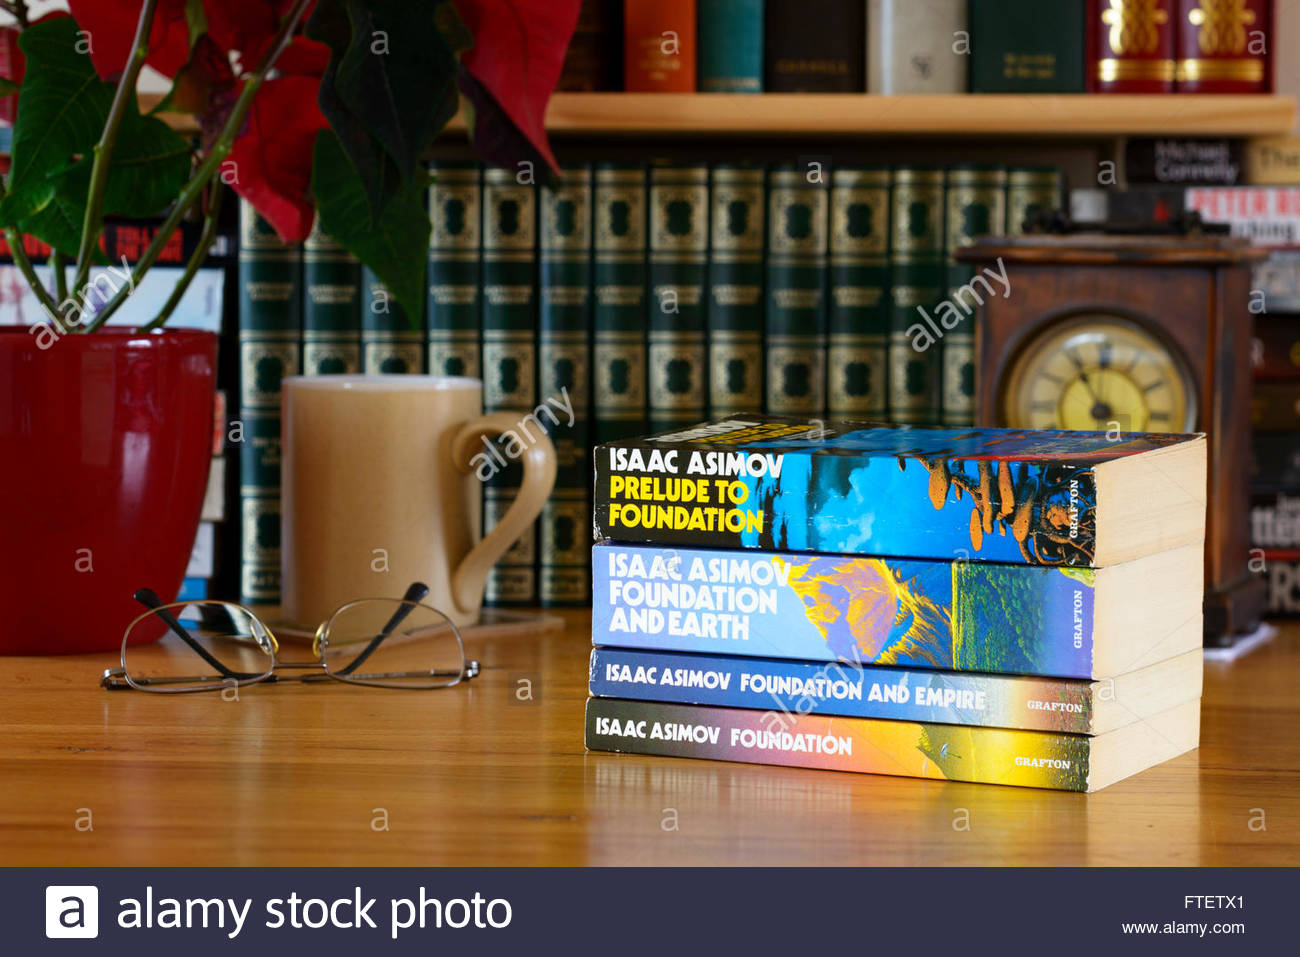 Isaac Asimov book titles, stacked on desk, England - Stock Image